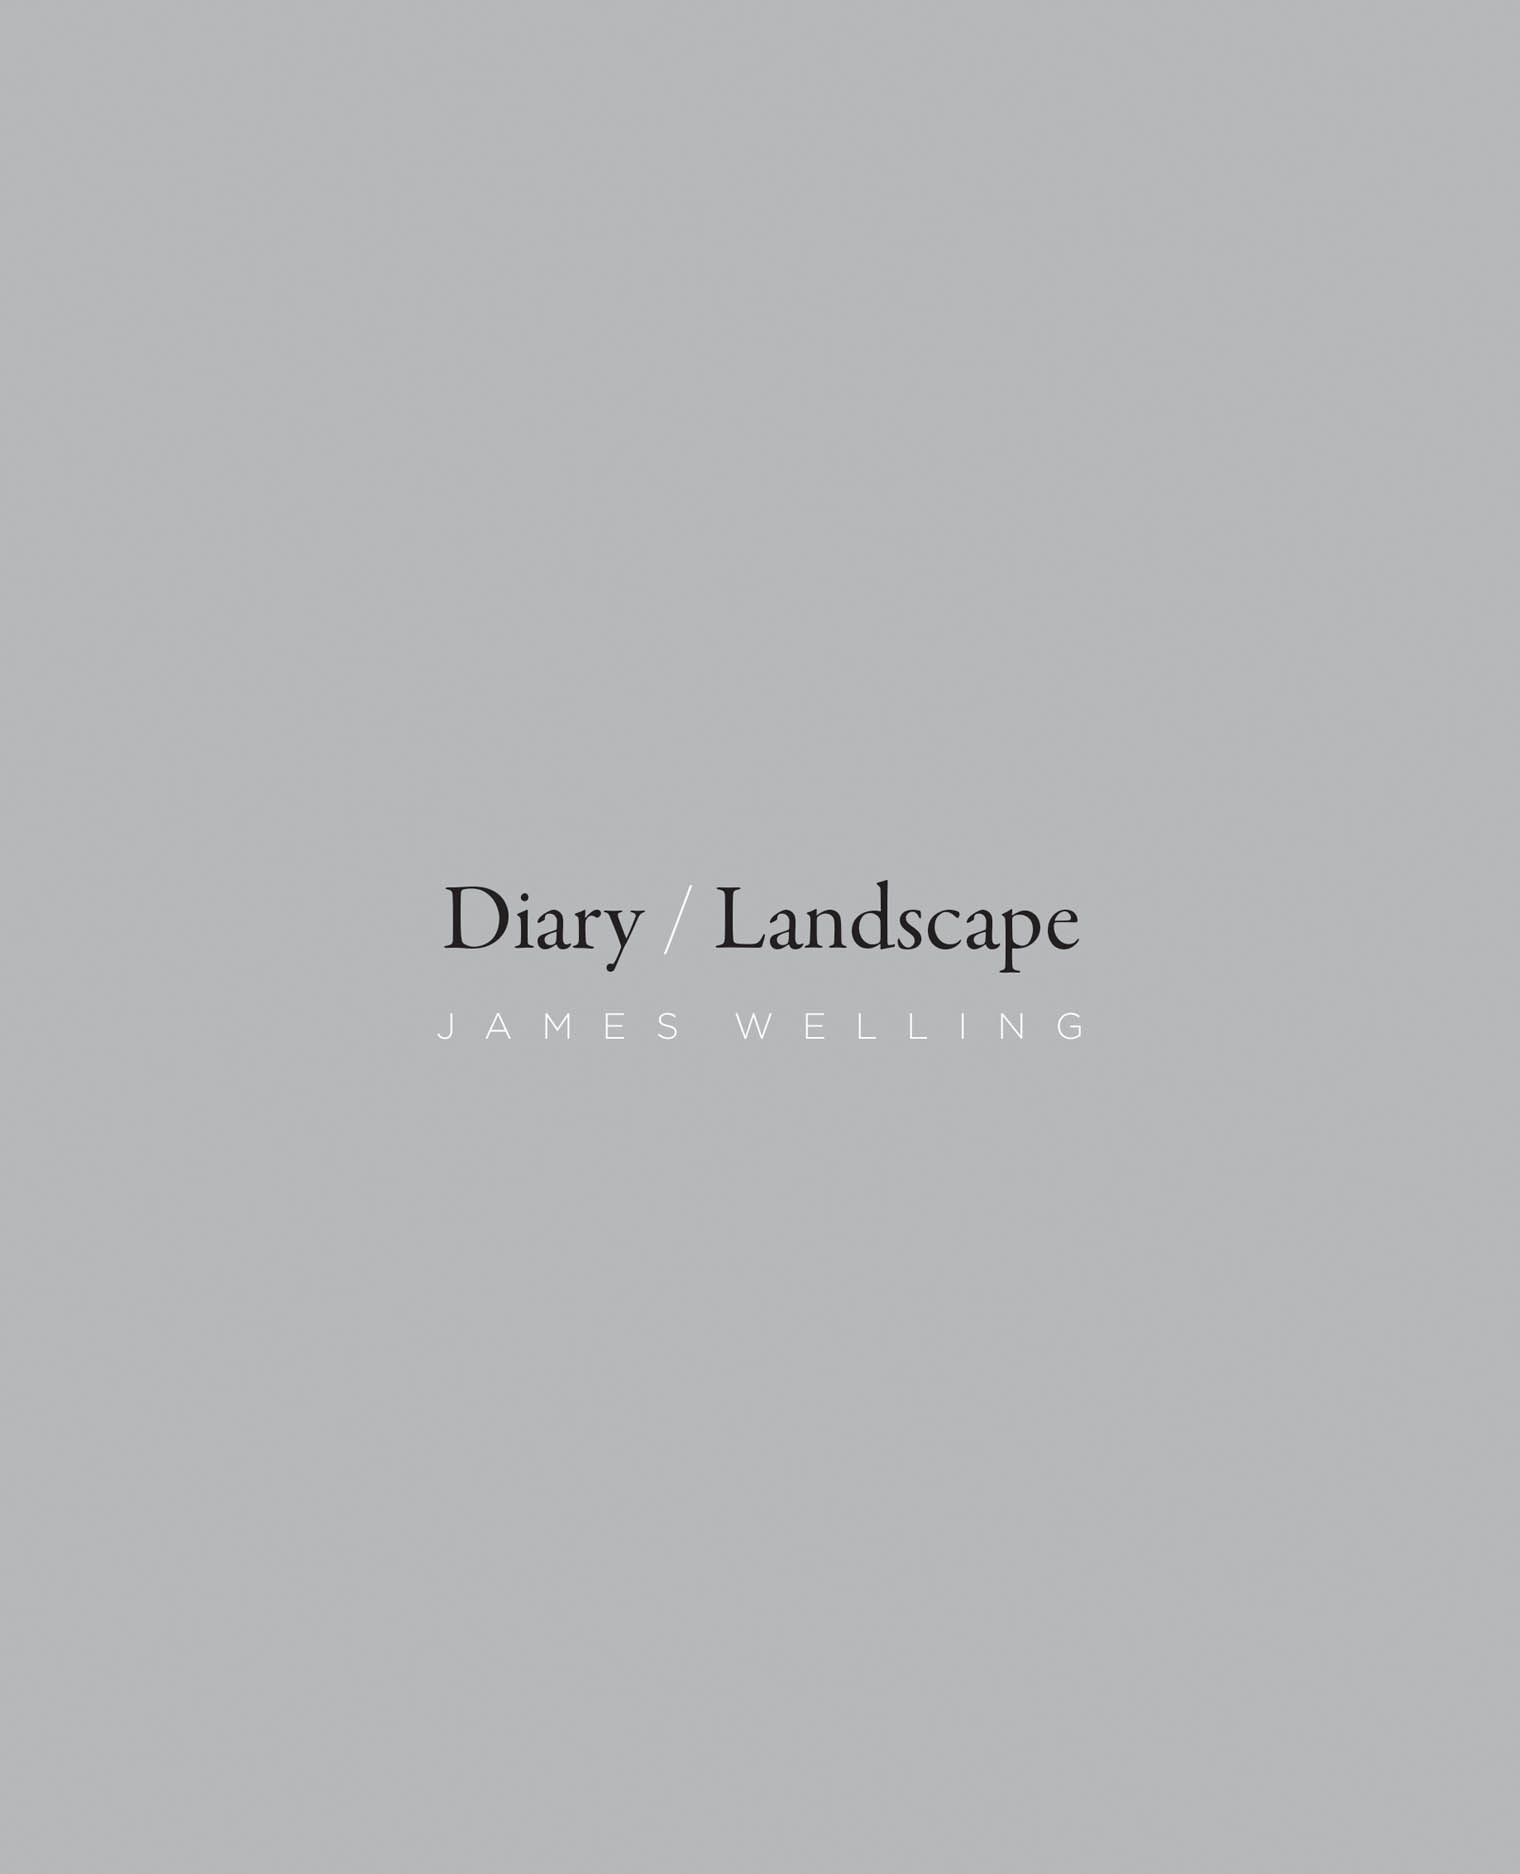 Diary/Landscape